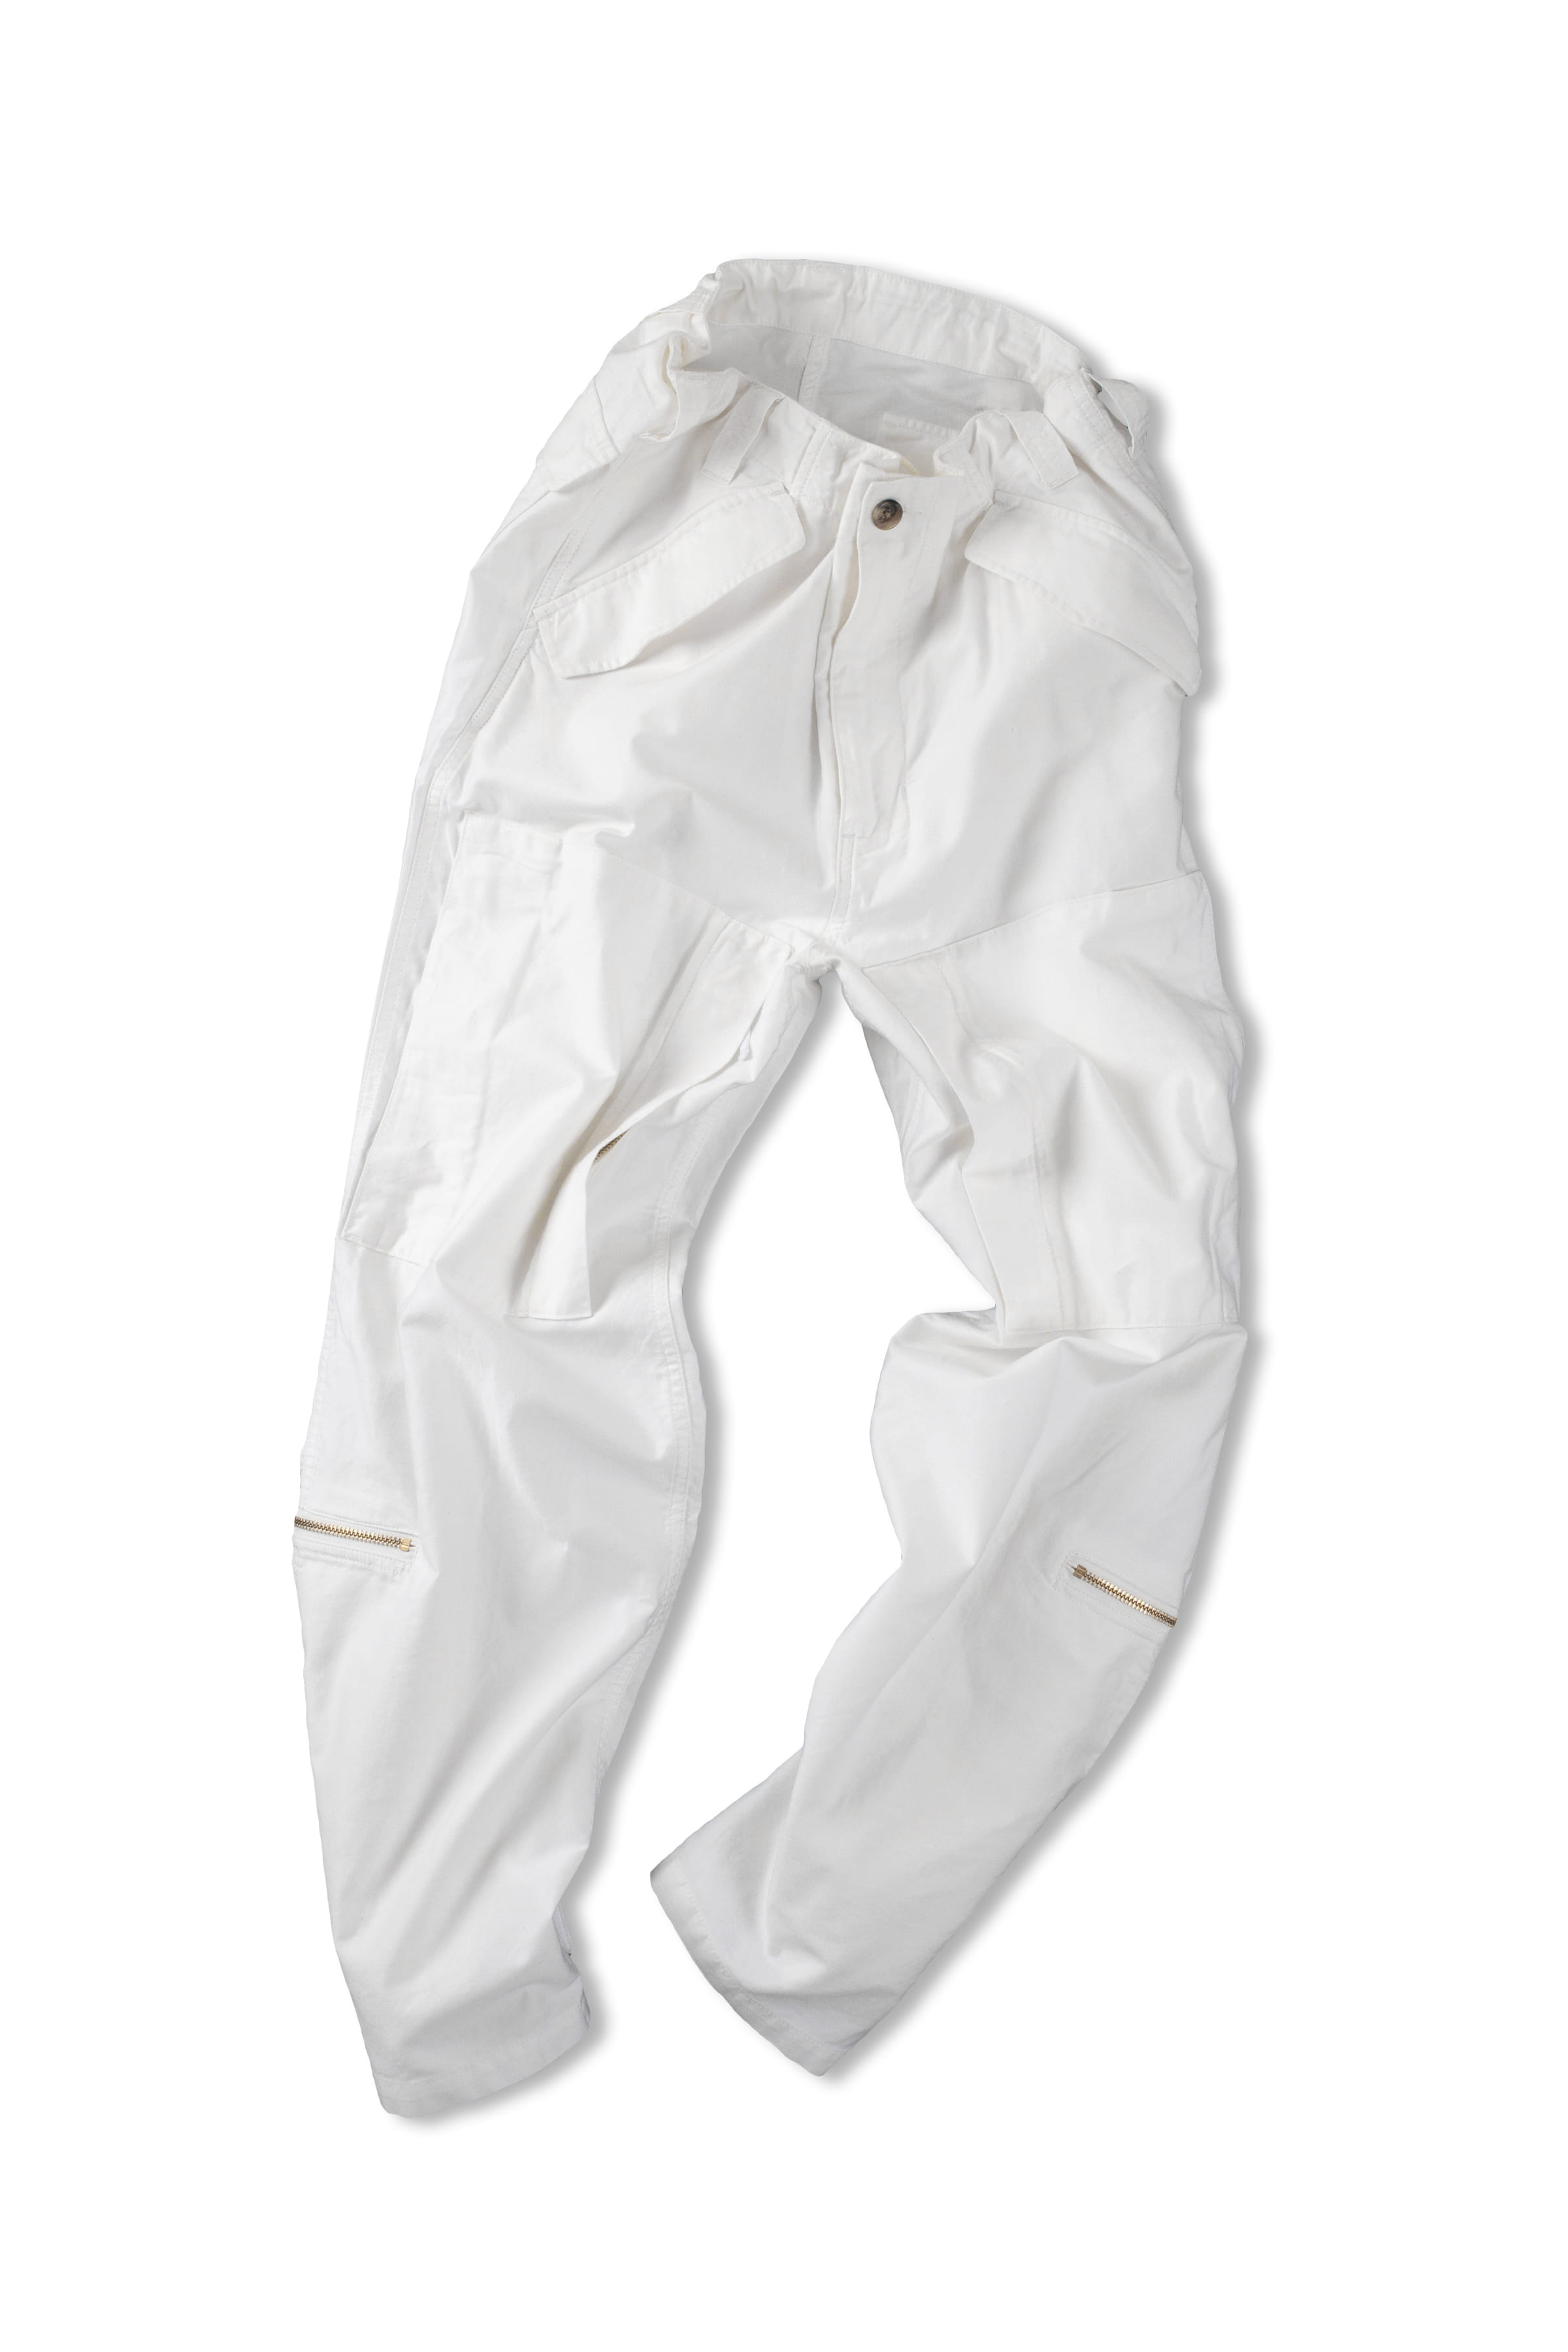 CLAMP : Helicopter Pants (White)